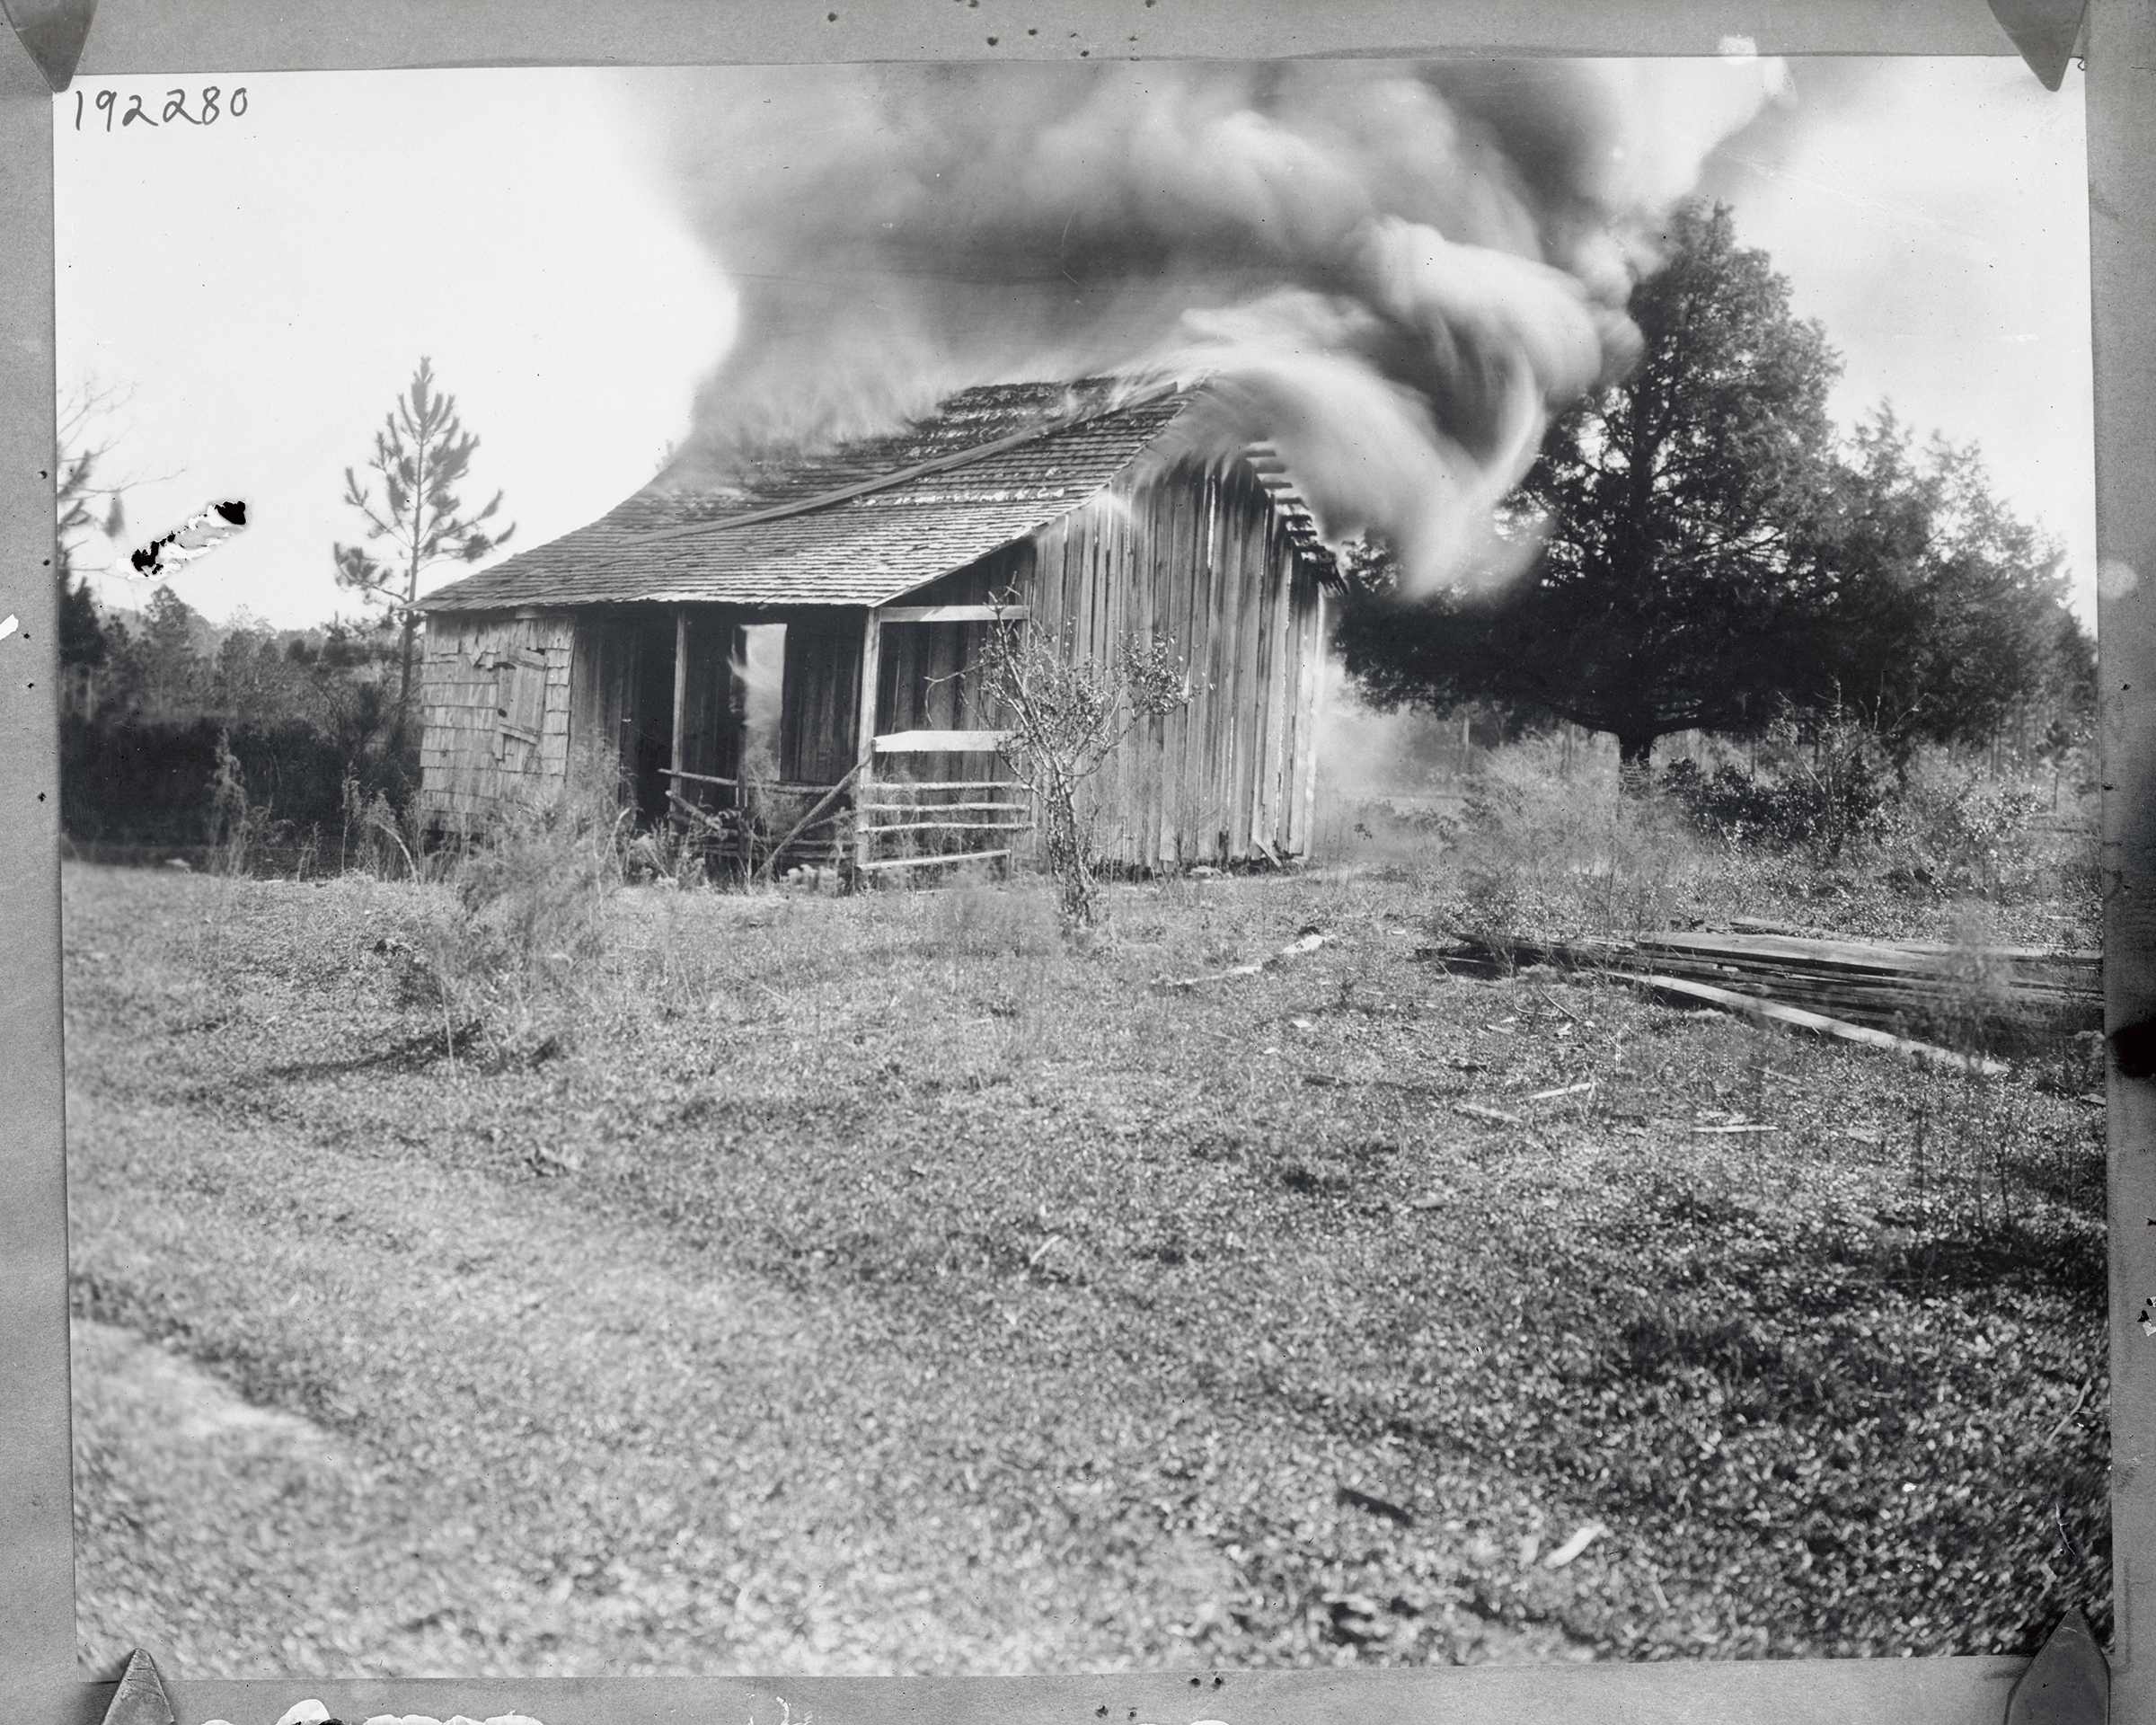 A home burns on Jan. 9, 1923, during a white mob's attacks on the Black community of Rosewood, Fla.